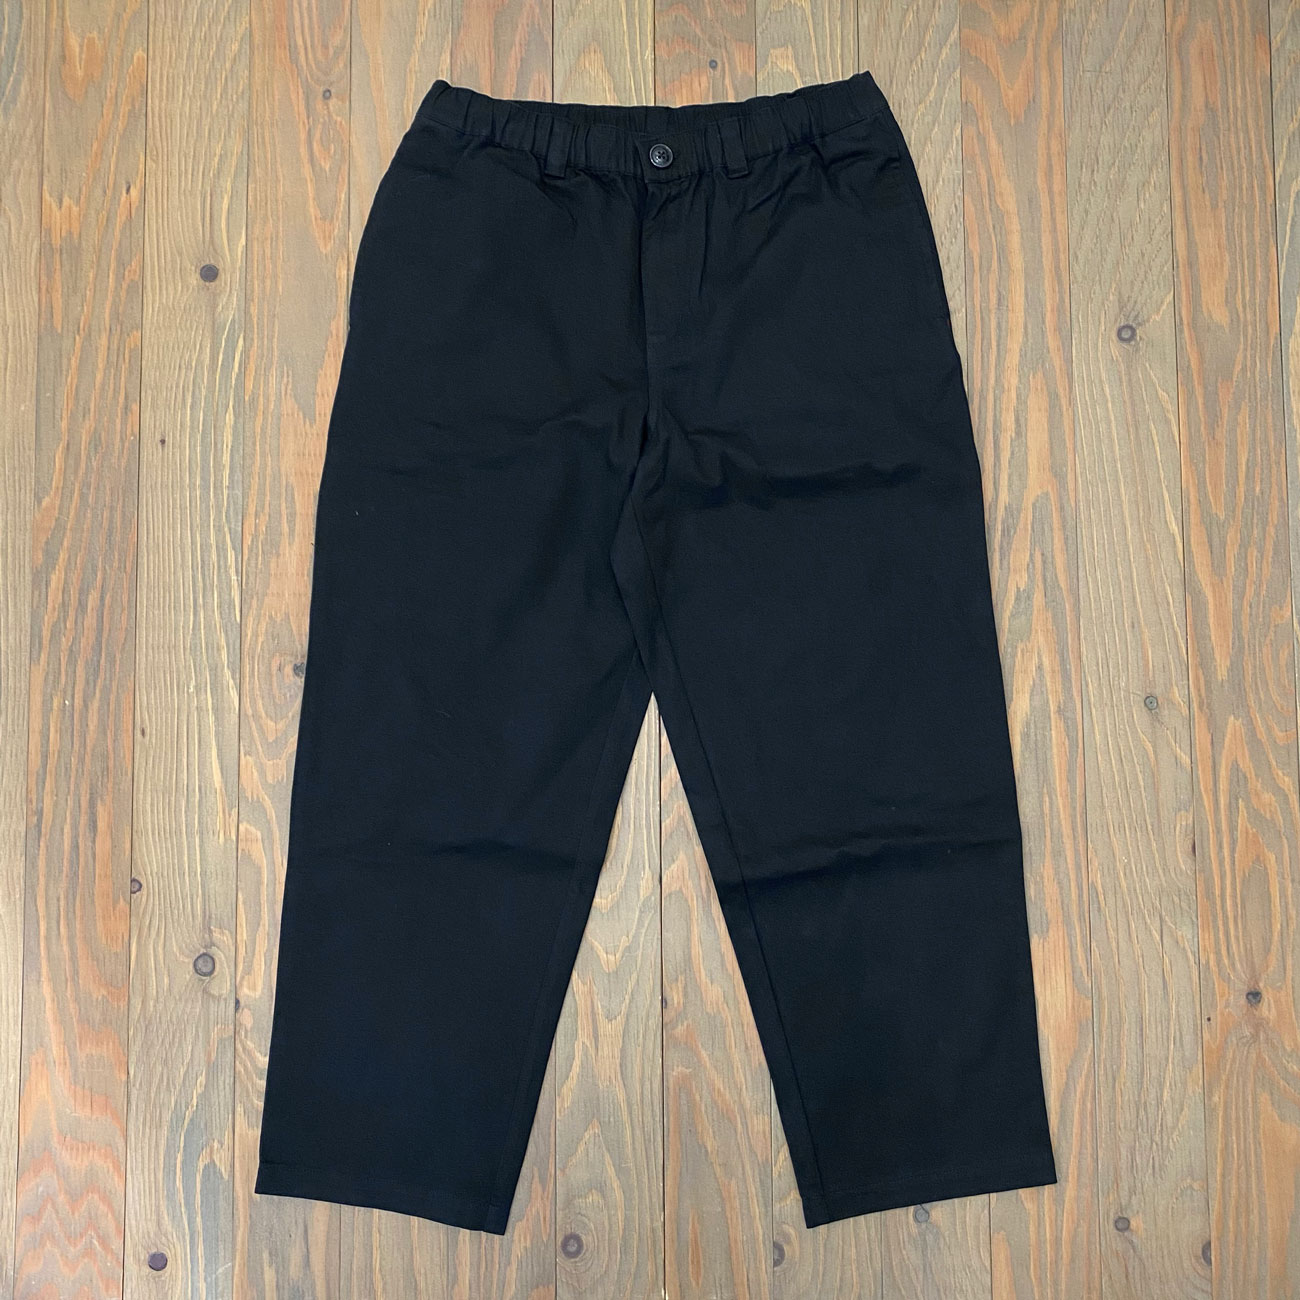 THEORIES STAMP LOUNGE PANTS BLACK